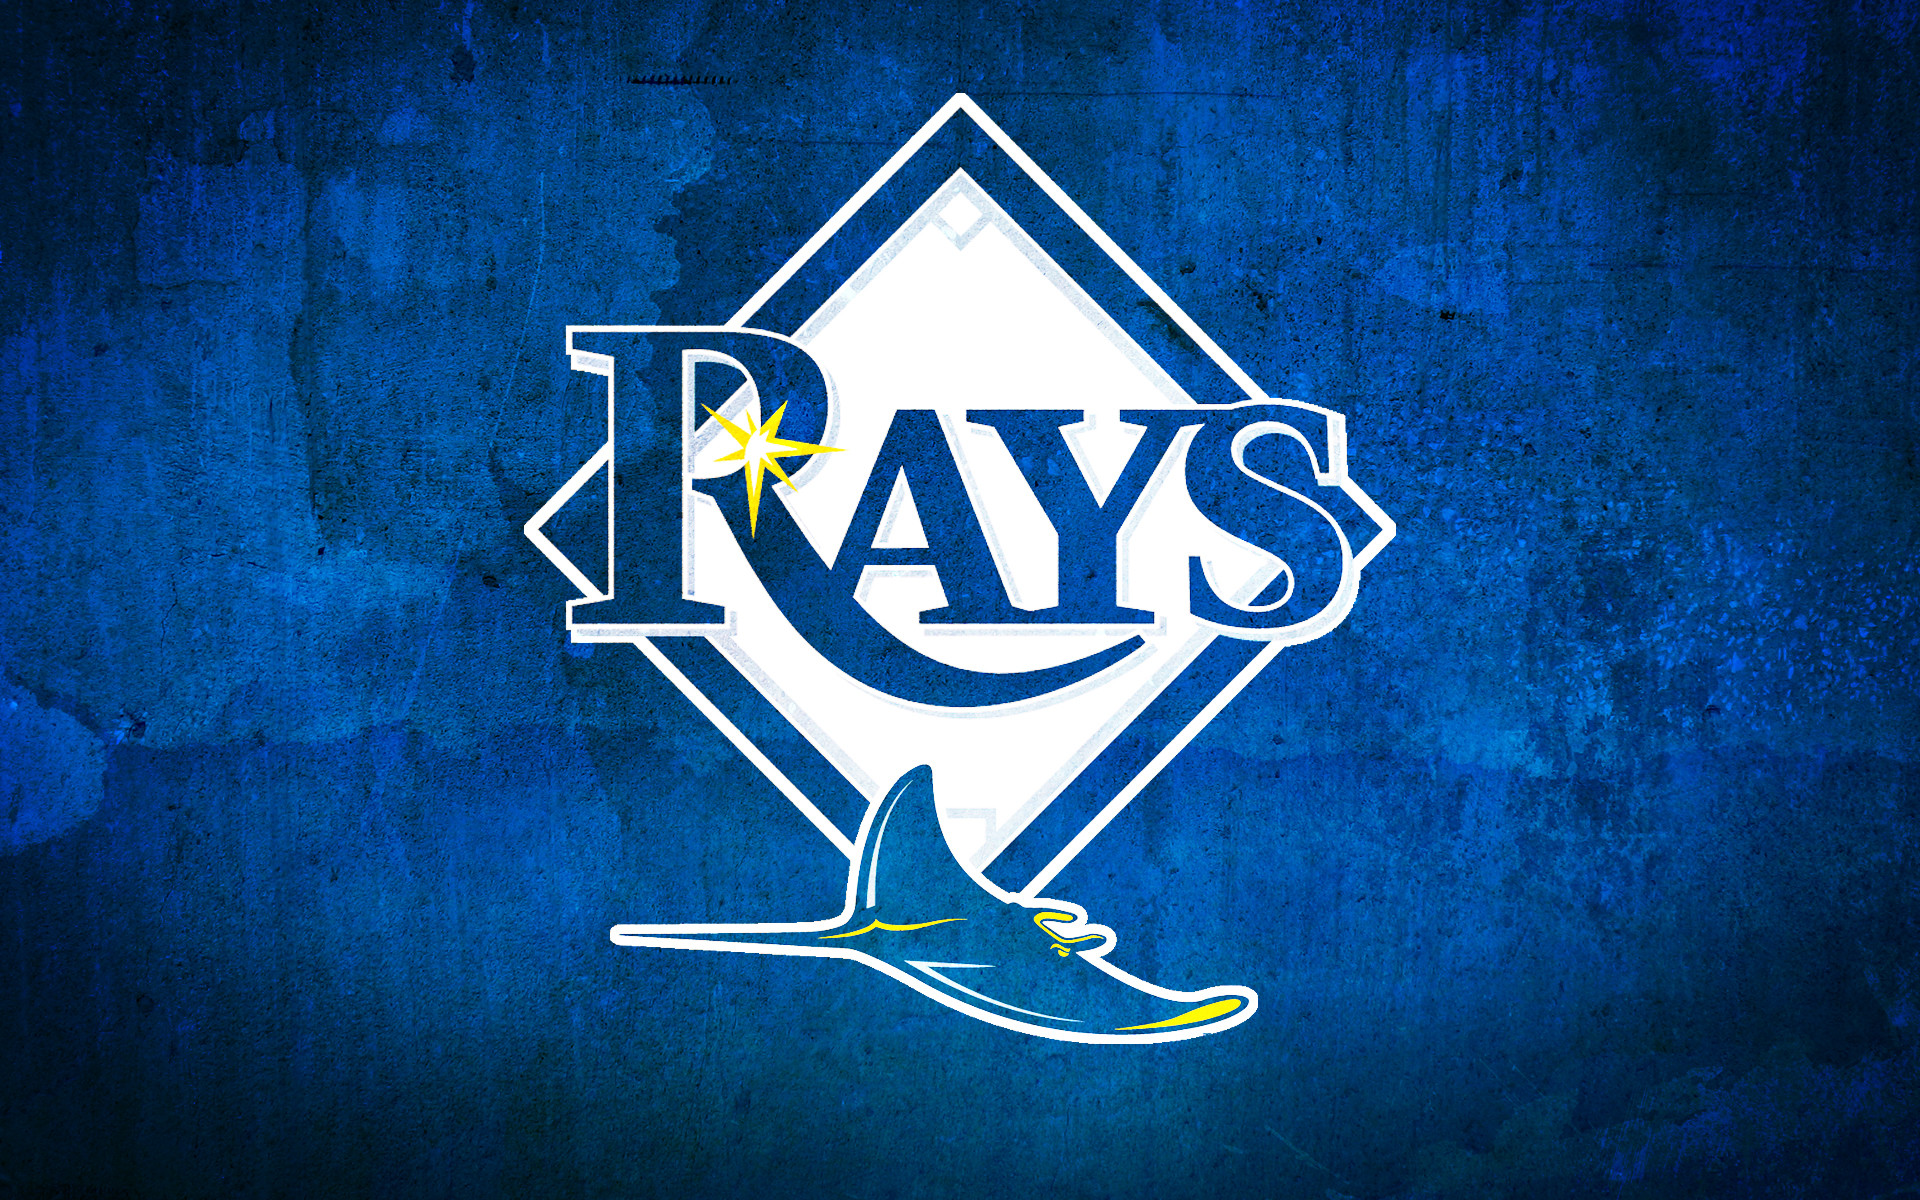 1920x1200 Tampa Bay Rays Desktop Wallpaper | Flickr - Photo Sharing!